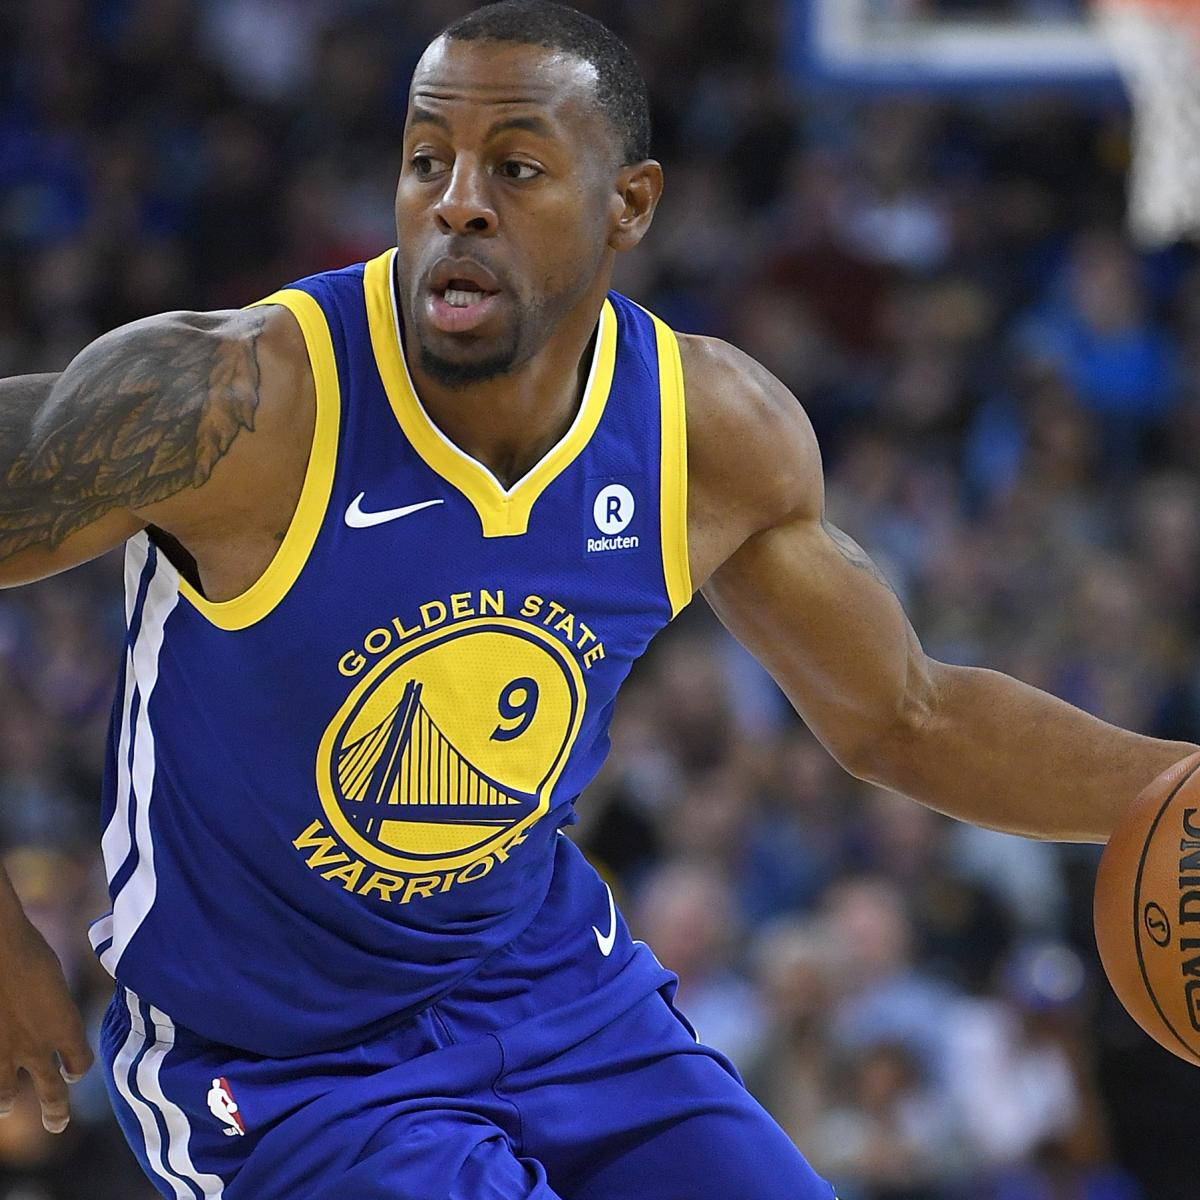 Warriors Come Out To Play Bleacher Report: Andre Iguodala Expected To Be Ready For Warriors Playoffs